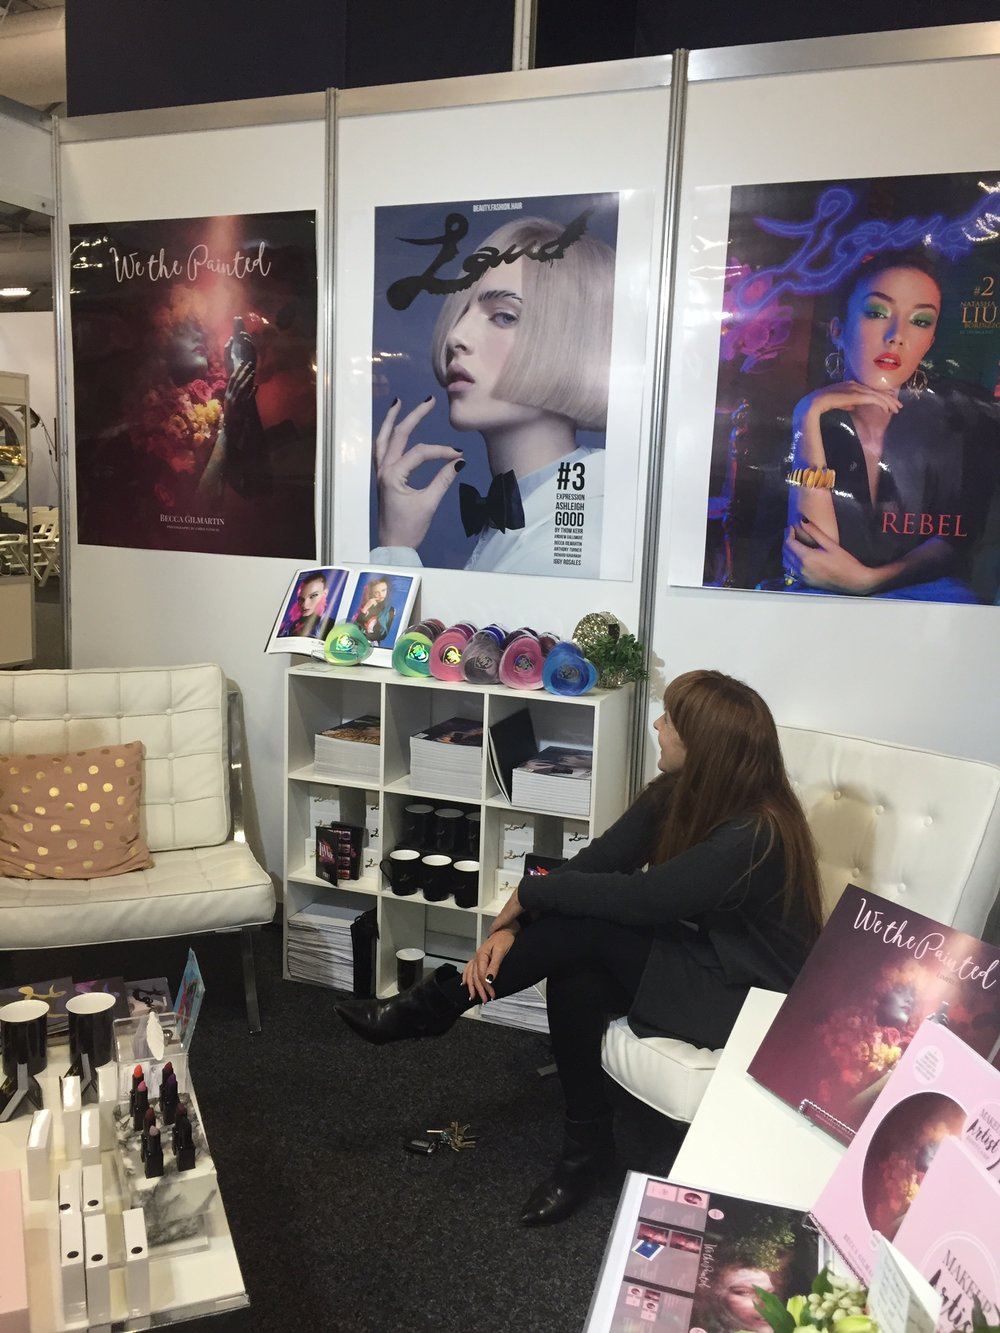 Trish Lee taking a moment in the chaos to appreciate the fact that all of our hard work was FINALLY paying off.... this was the first time my books saw the light of day! The books wouldn't exist without the support of Trish and LAUD Magazine. xxxx